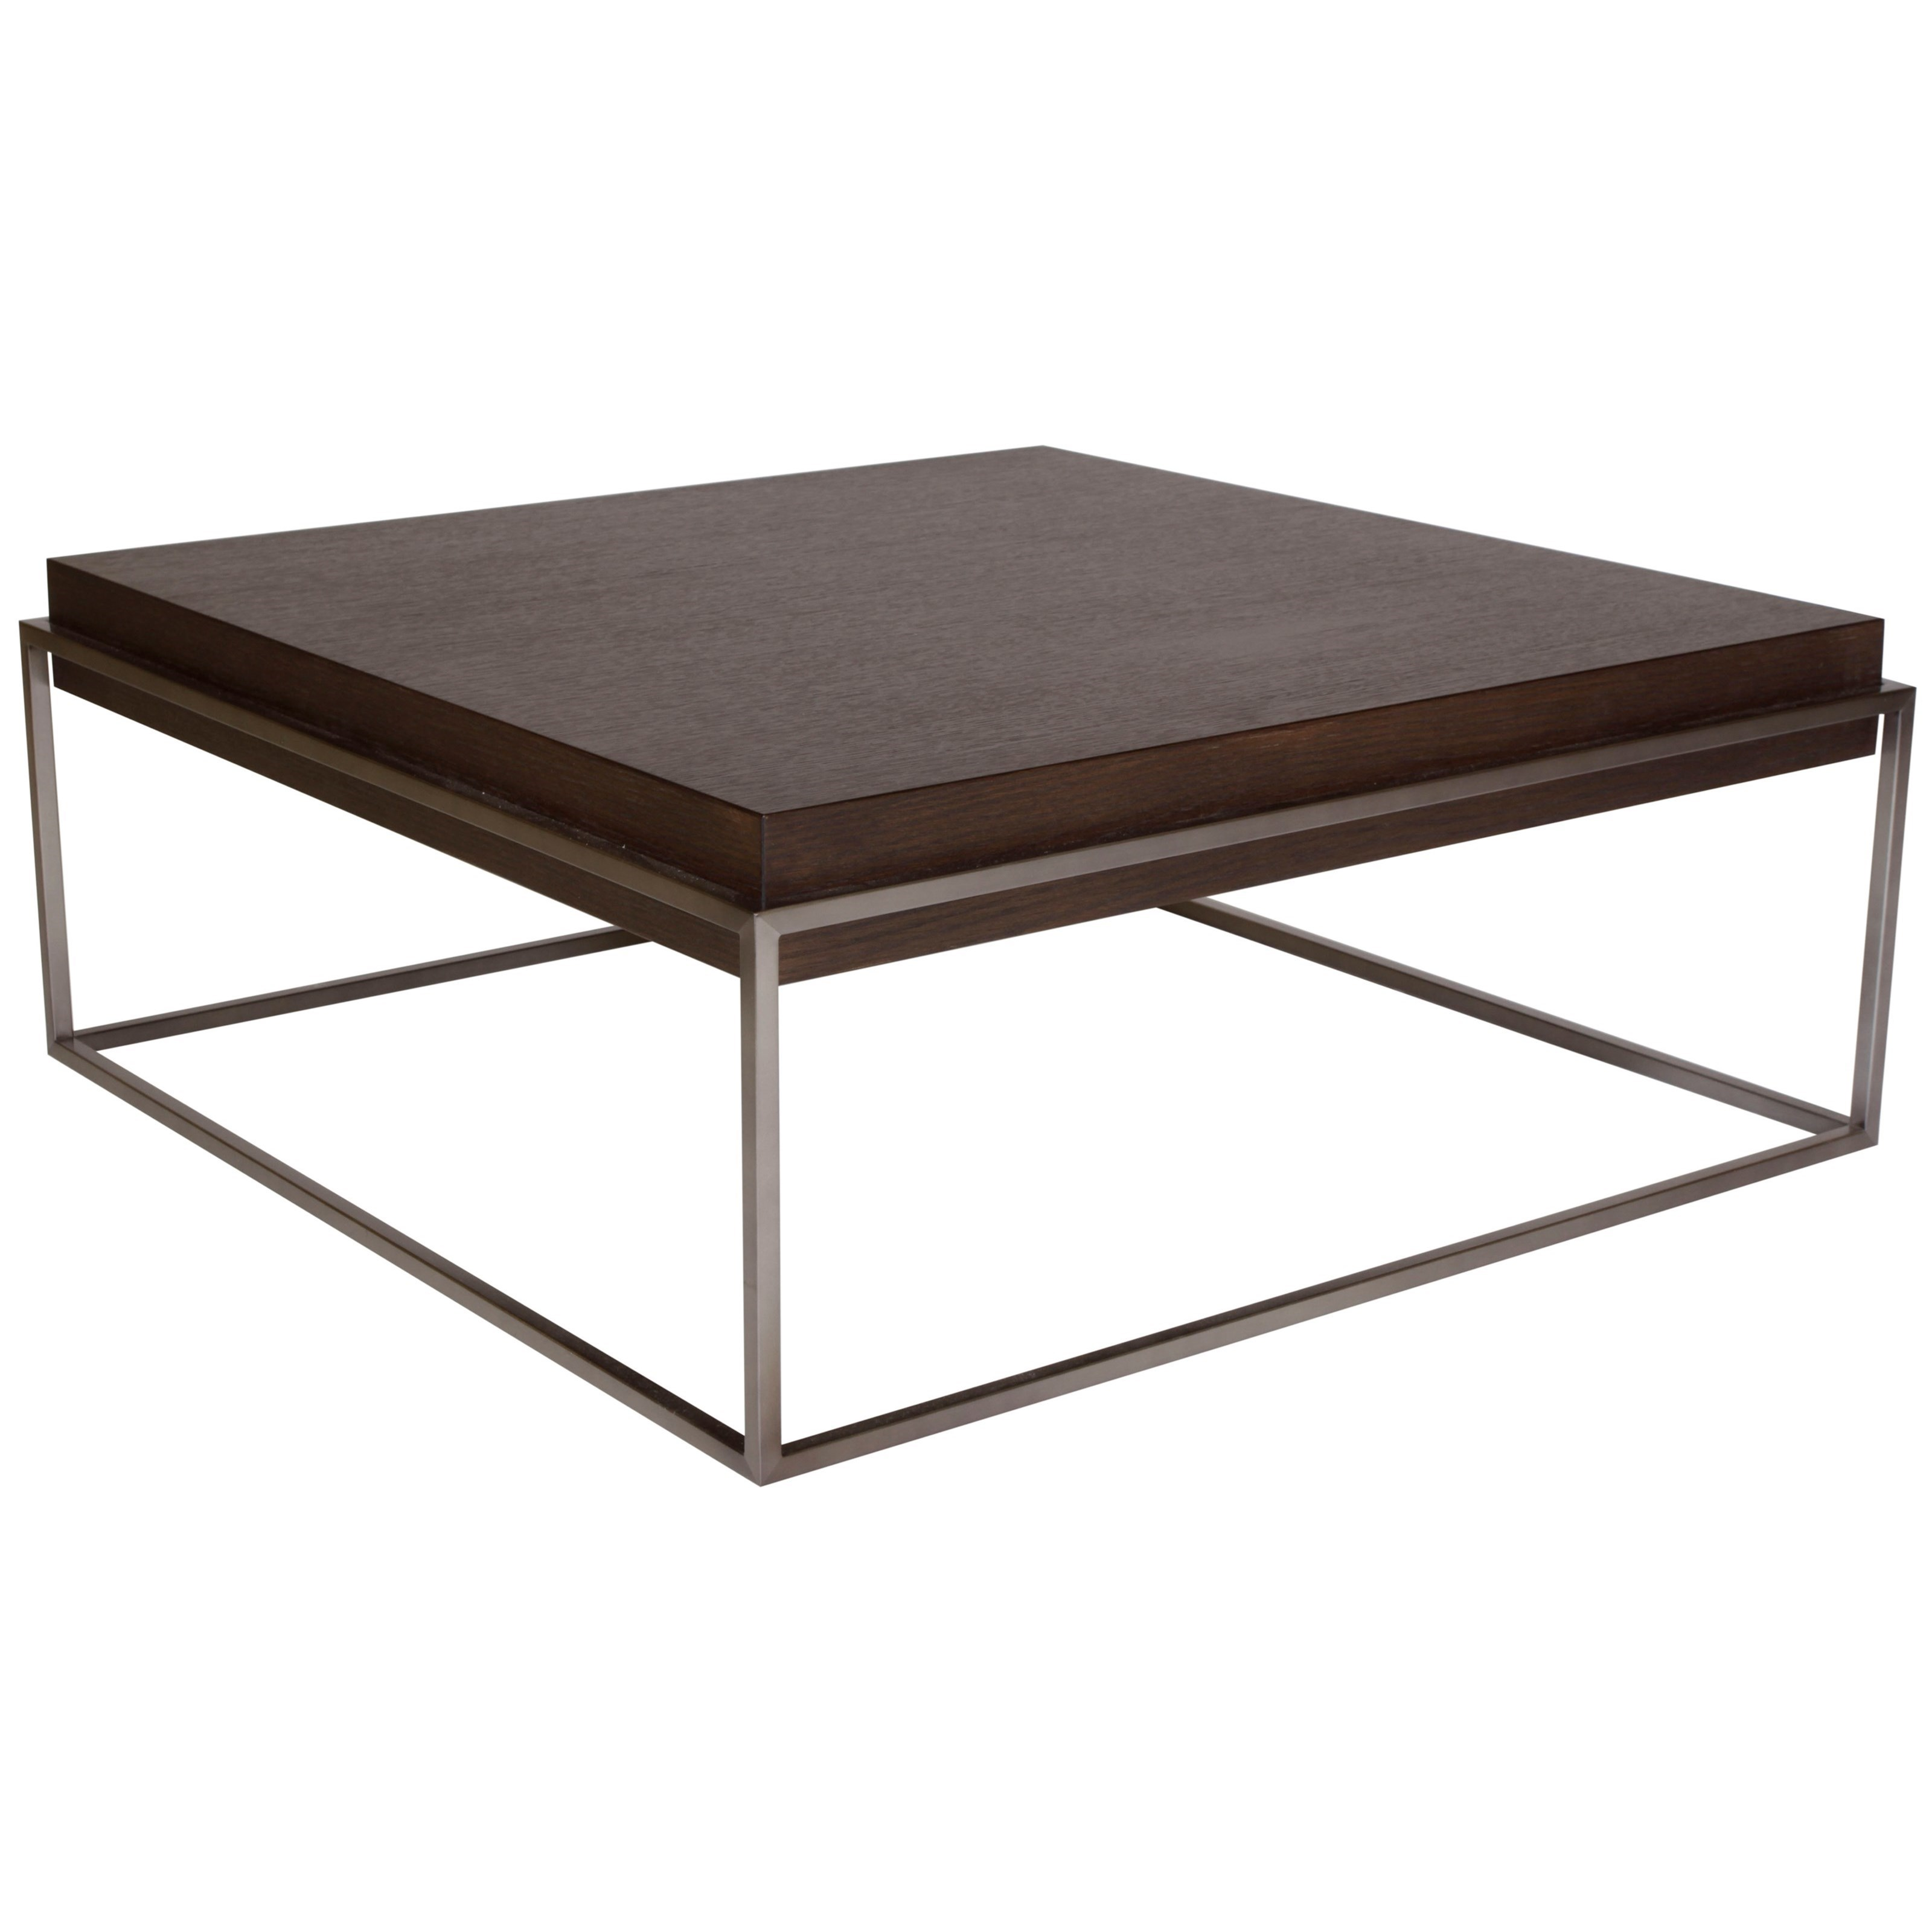 Cielo Cocktail Table by Natuzzi Editions at HomeWorld Furniture